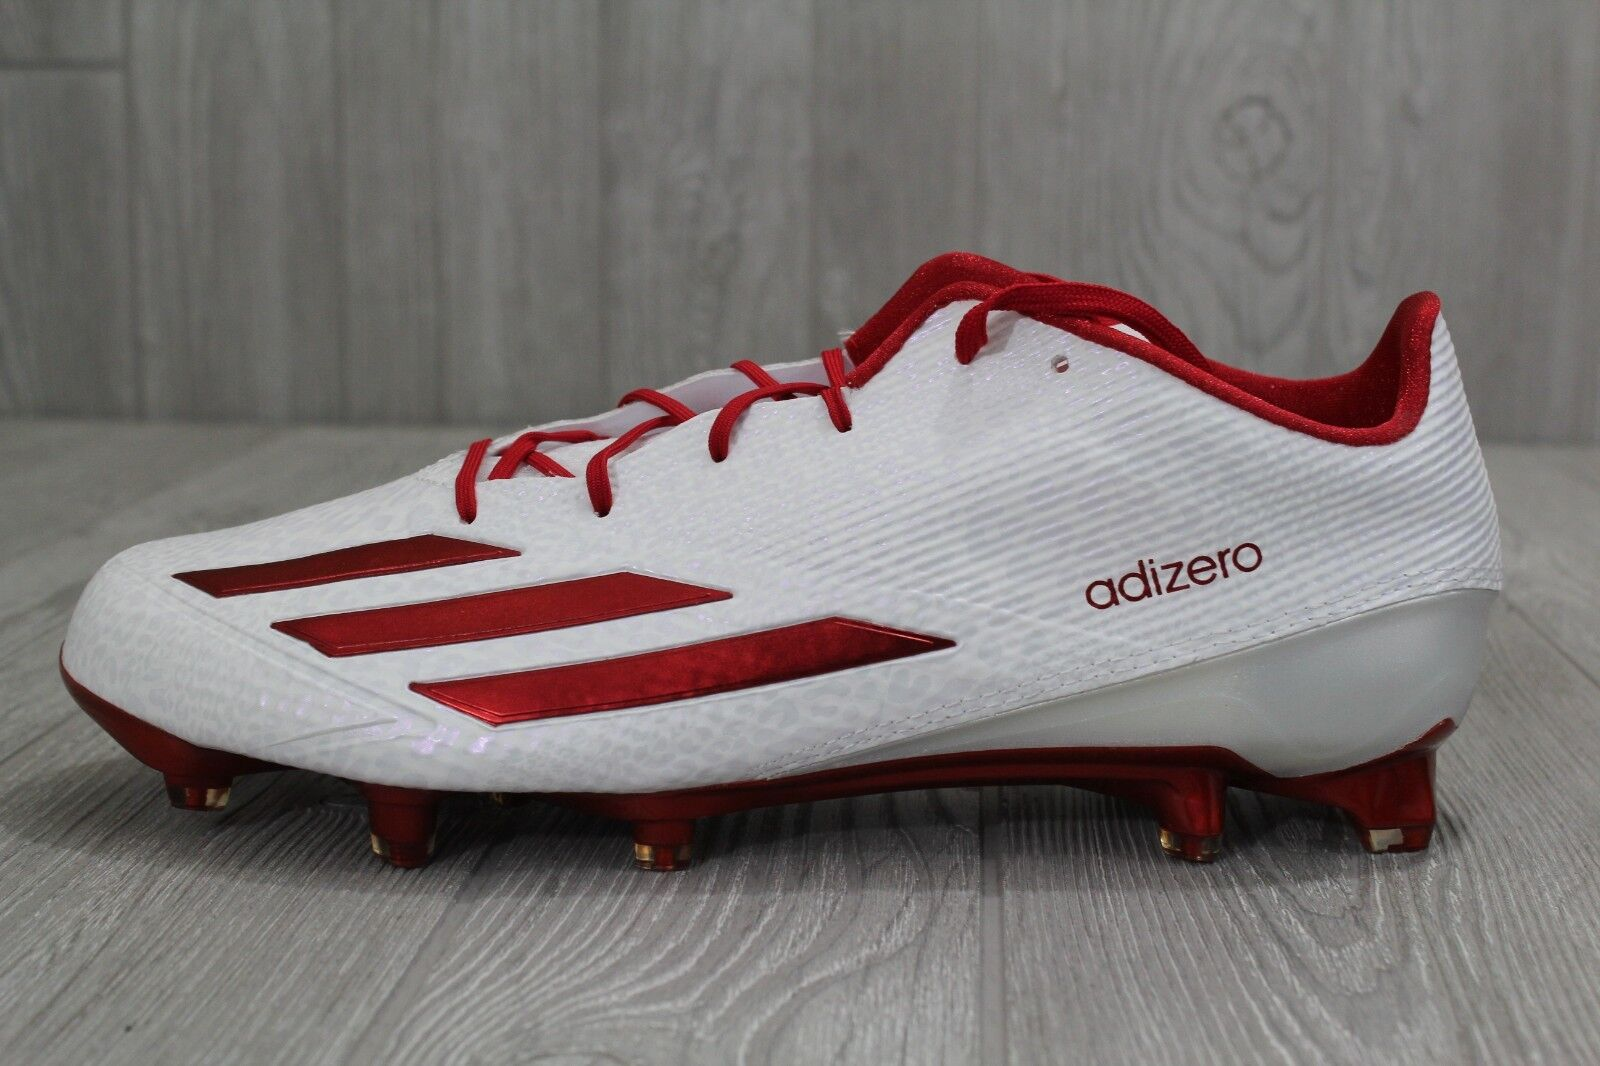 25 New Adidas Men's Adizero 5 Star 5.0 Low Football Cleats Shoes Q16060 12-13 Casual wild